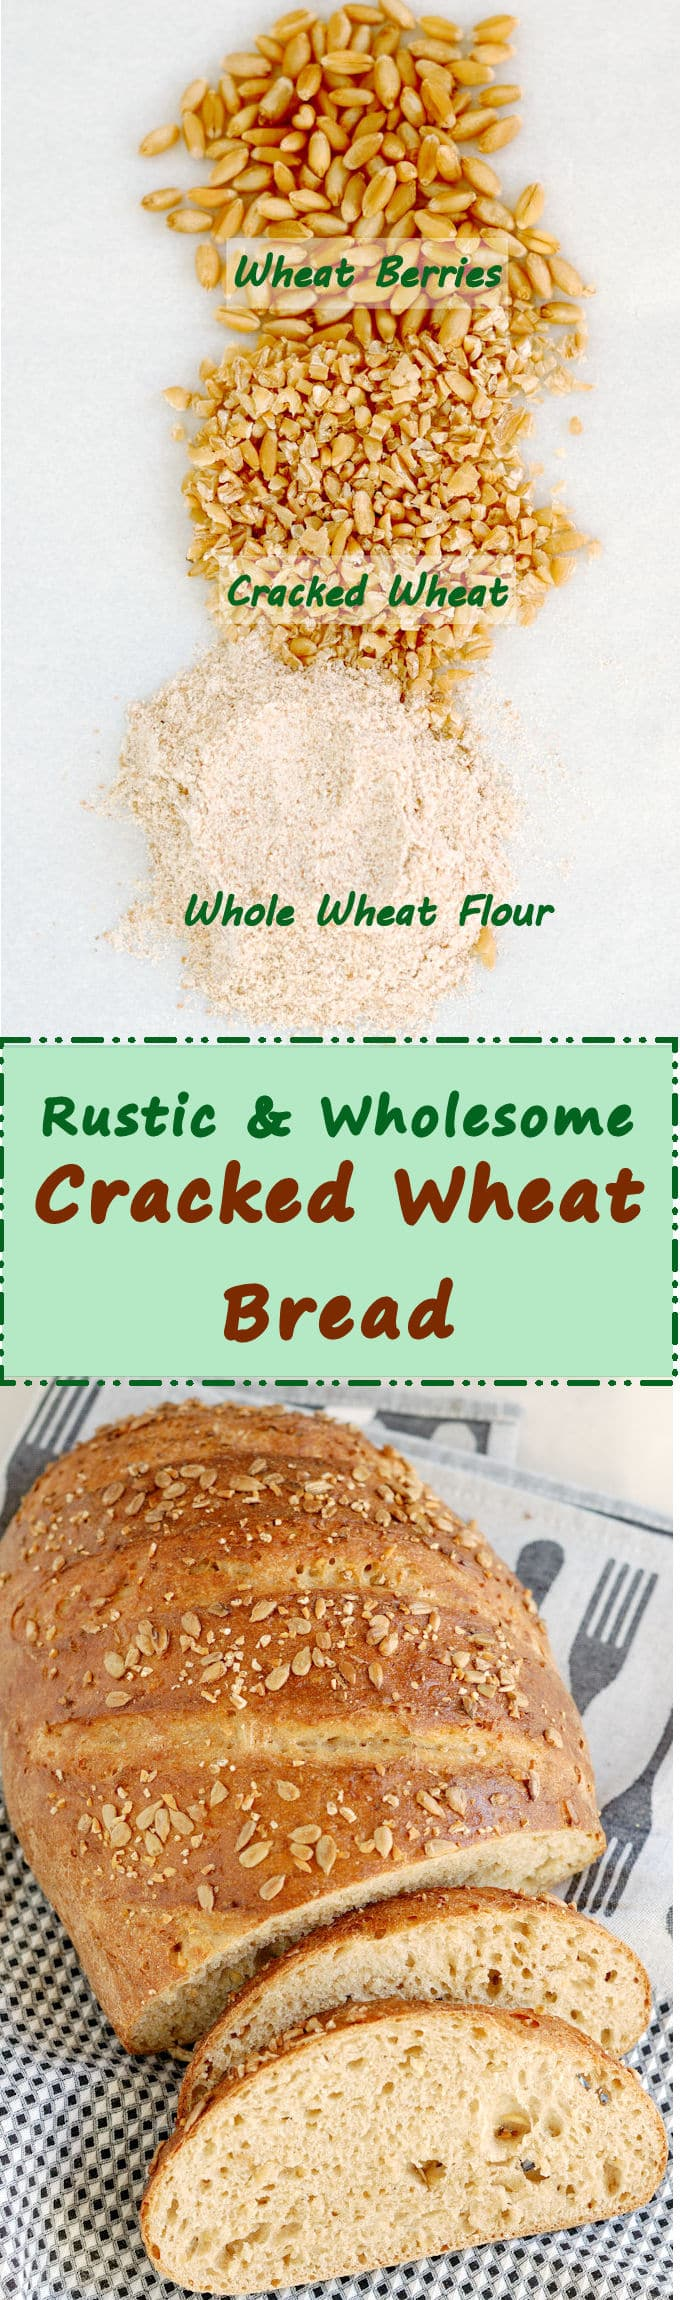 Cracked Wheat Bread is a rustic and chewy loaf with a substantial bite. Make this bread when you want a hearty loaf full of whole wheat flavor and goodness.